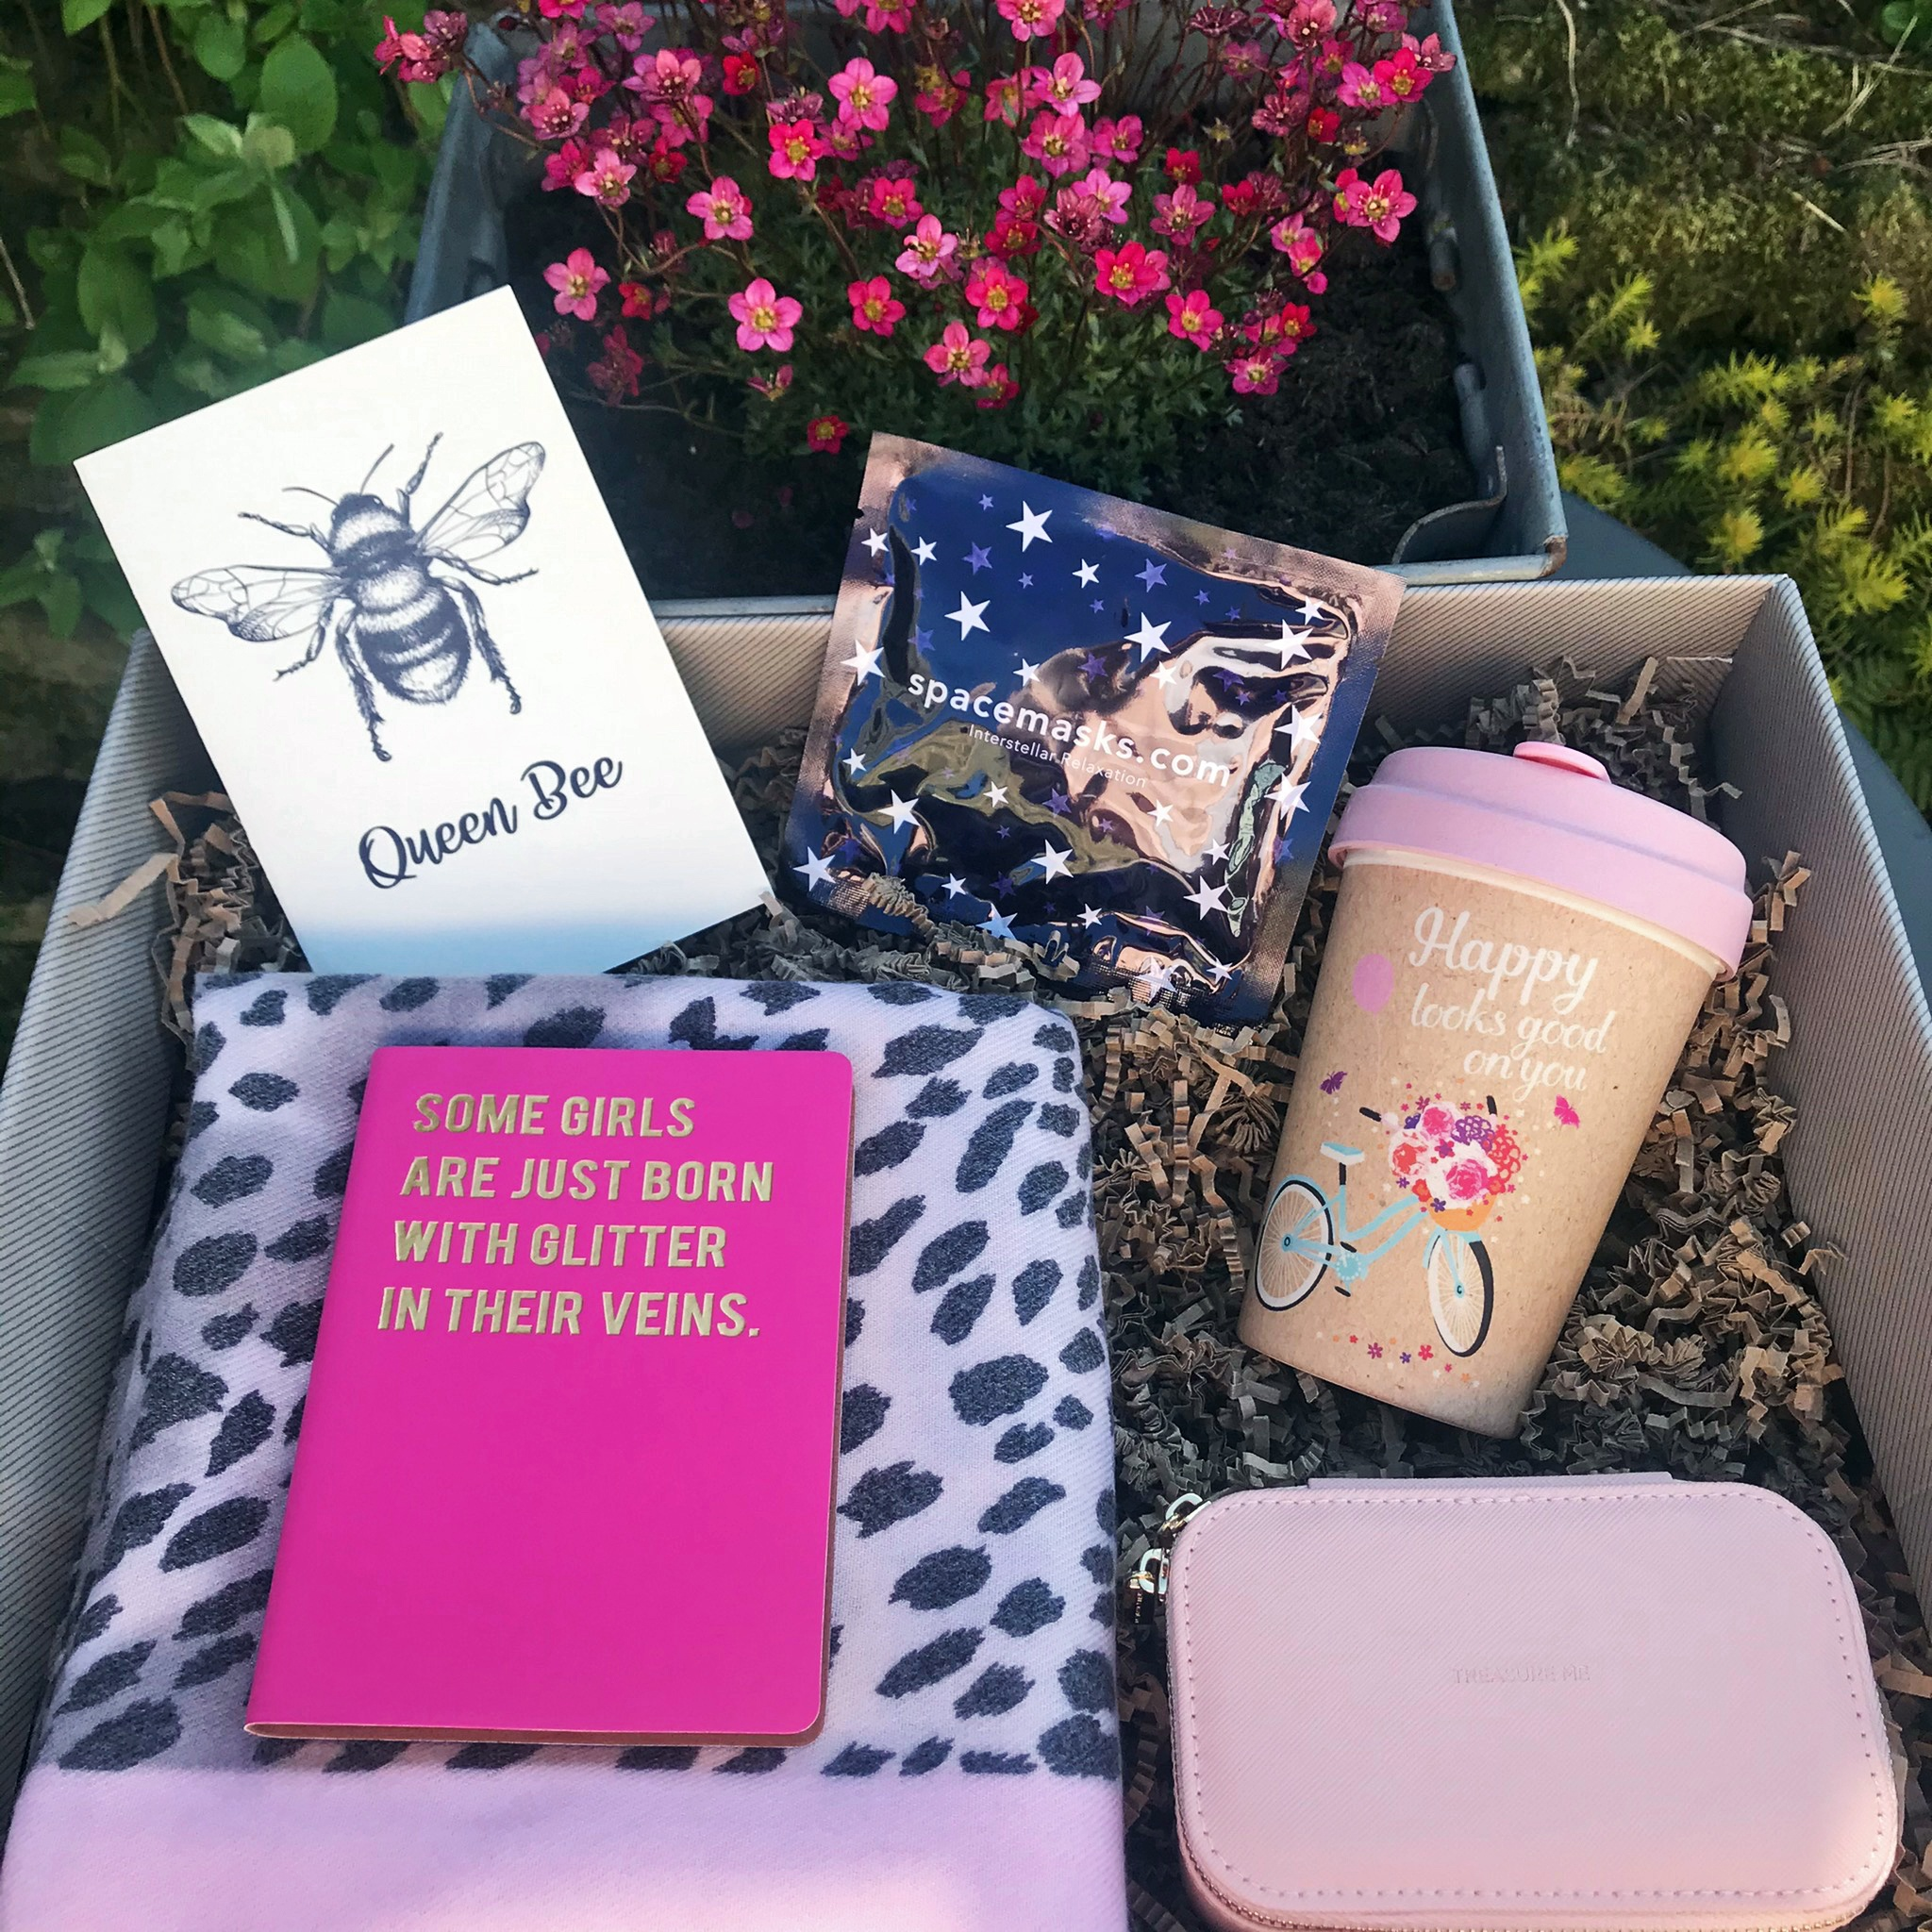 This Gift Box For Women is the perfect present for an important lady in your life.